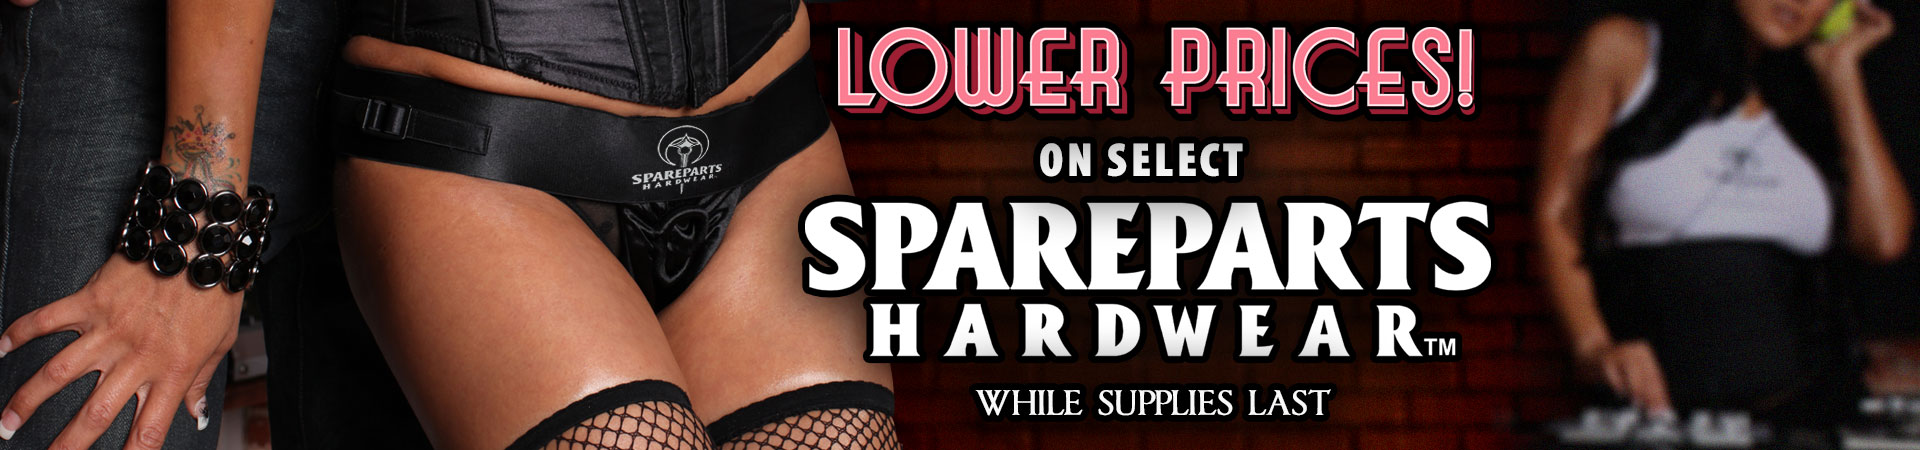 Lower Prices On Select SpareParts Hardwear